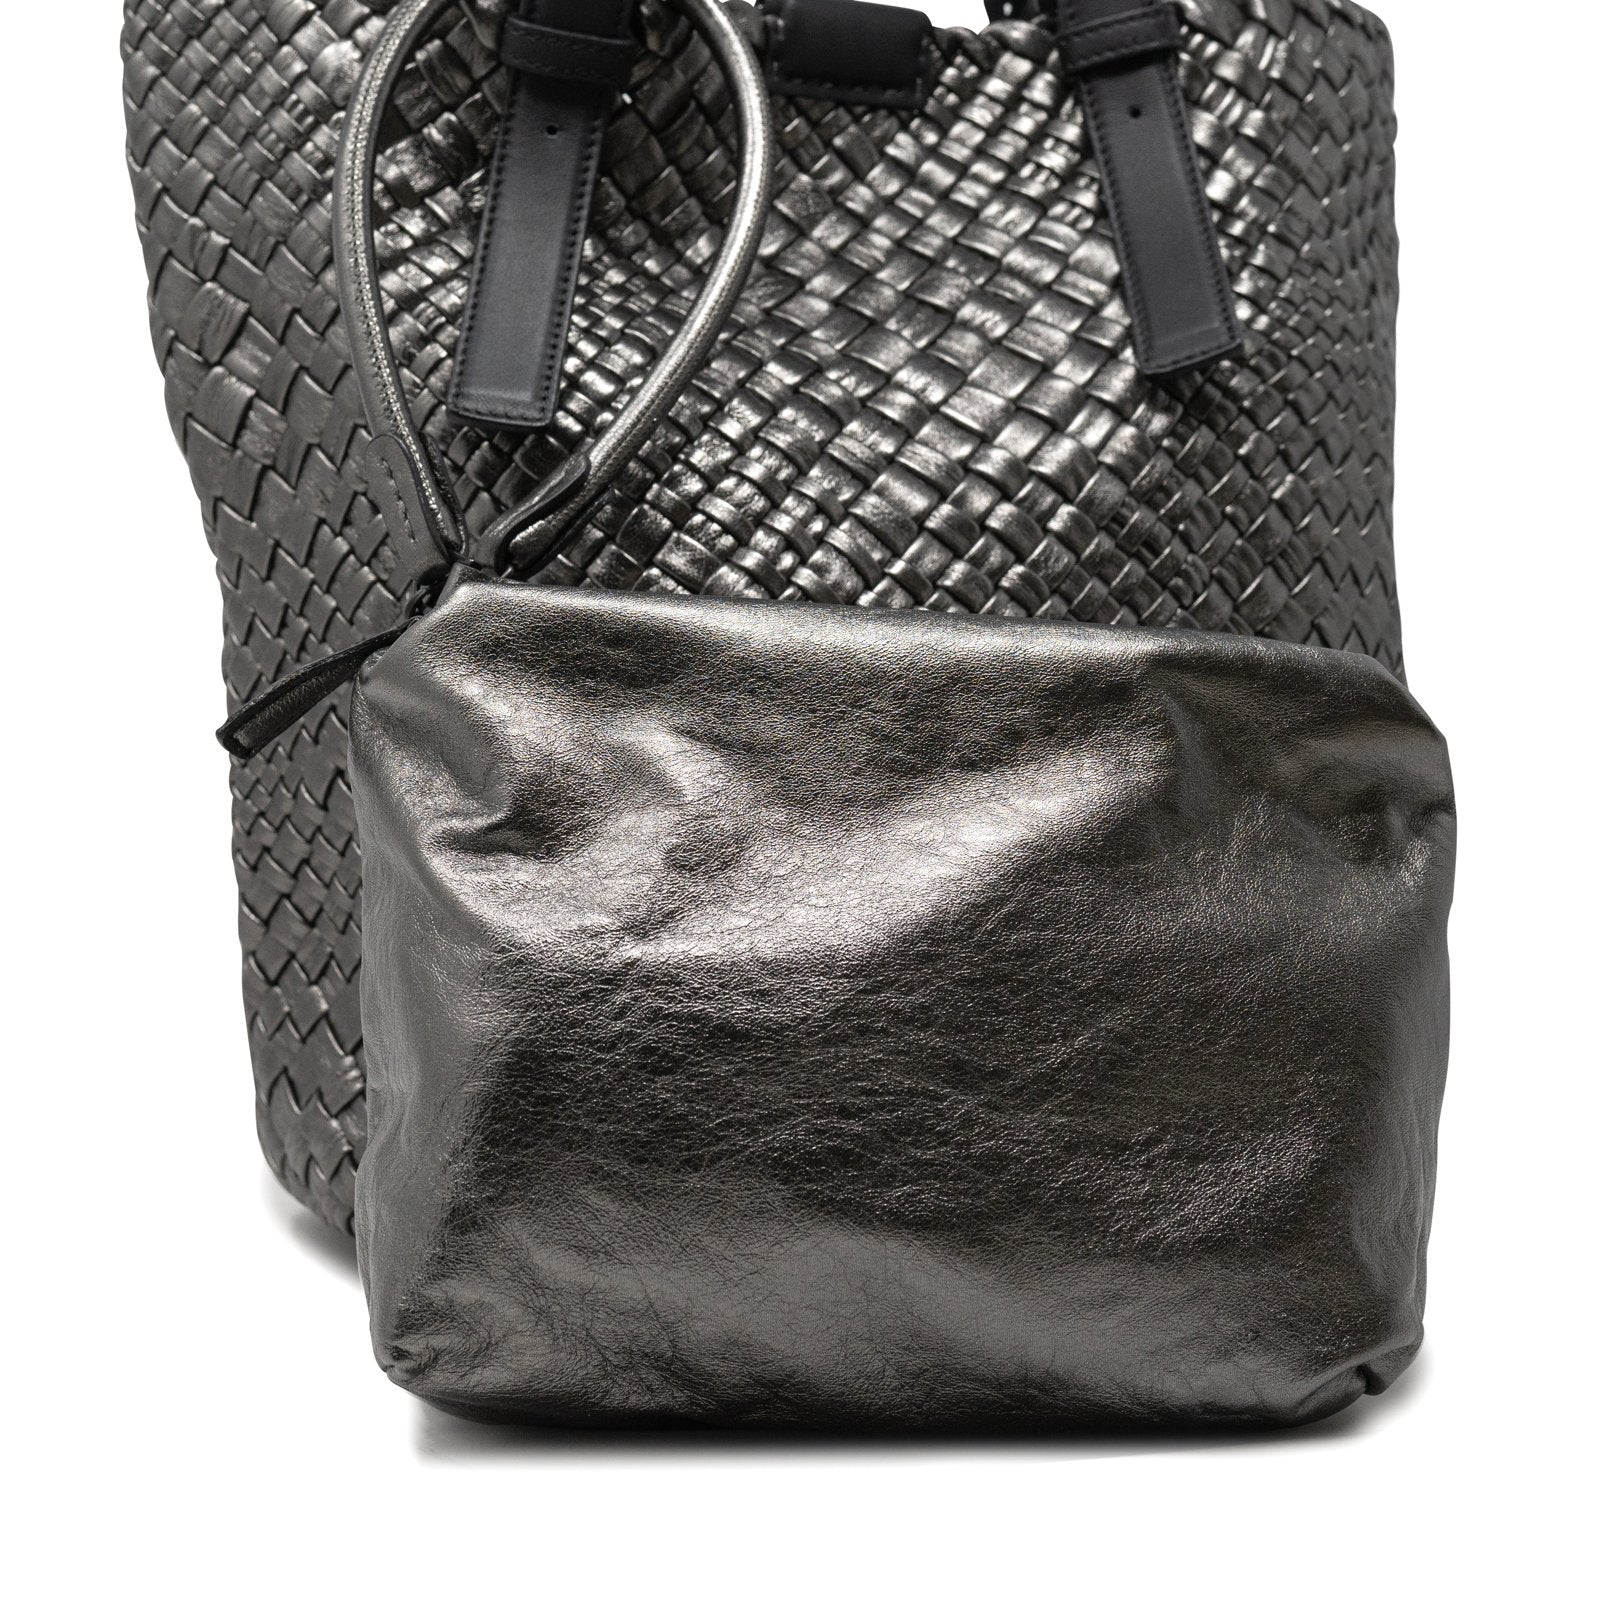 Women Intrecciato Long Tote Bag in Gun Metal - Jennifer Tattanelli